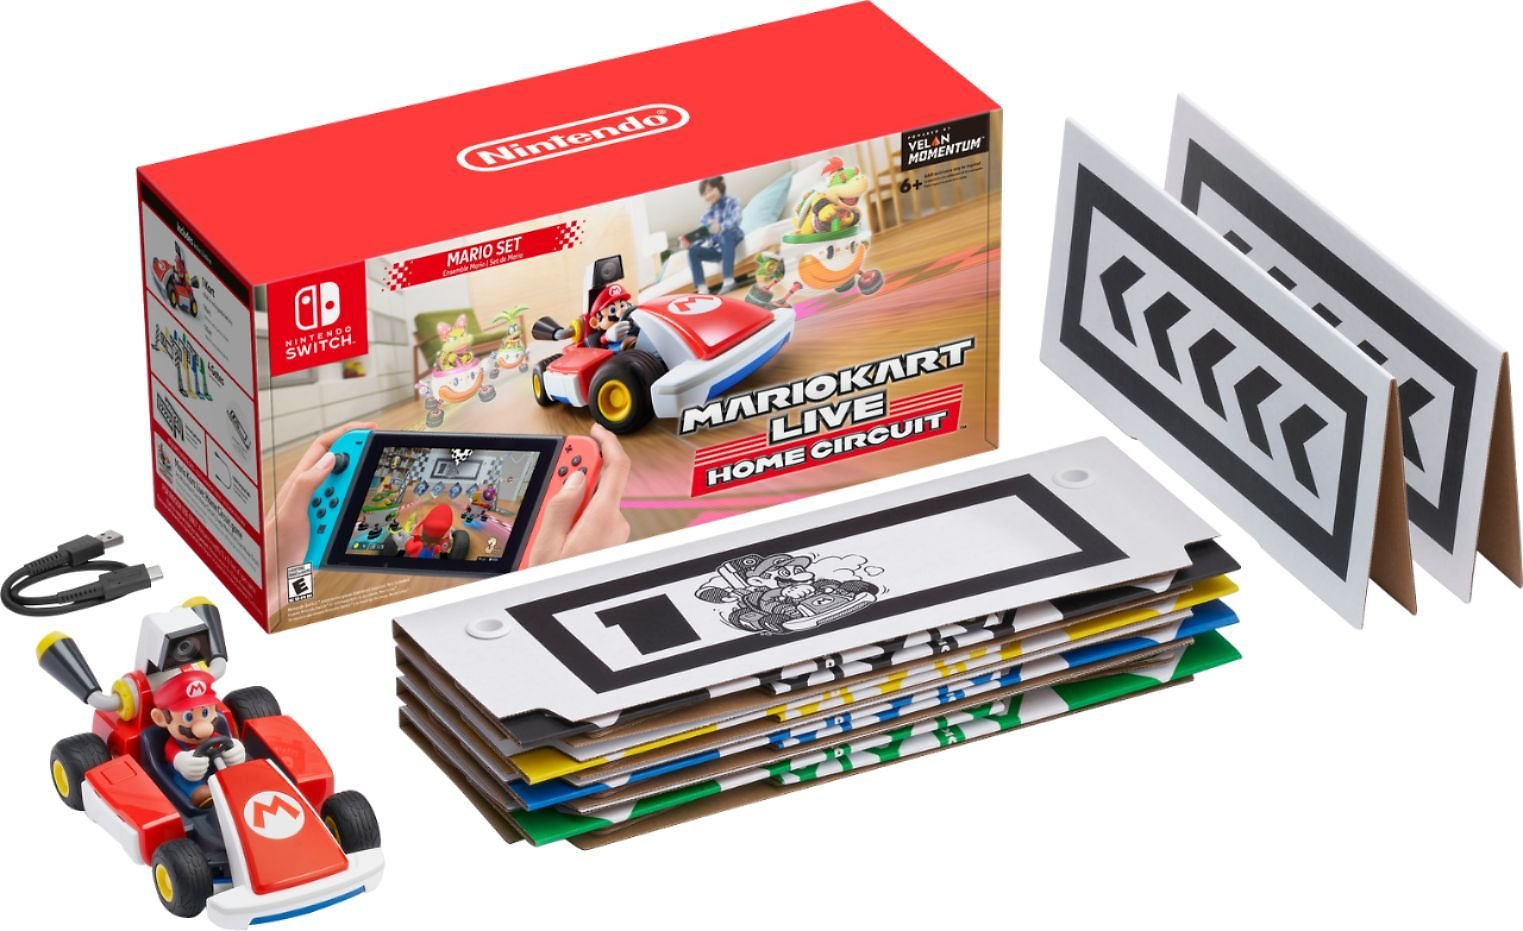 Mario Kart Live: Home Circuit Nintendo Switch, Nintendo Switch Lite HACRRMAAA